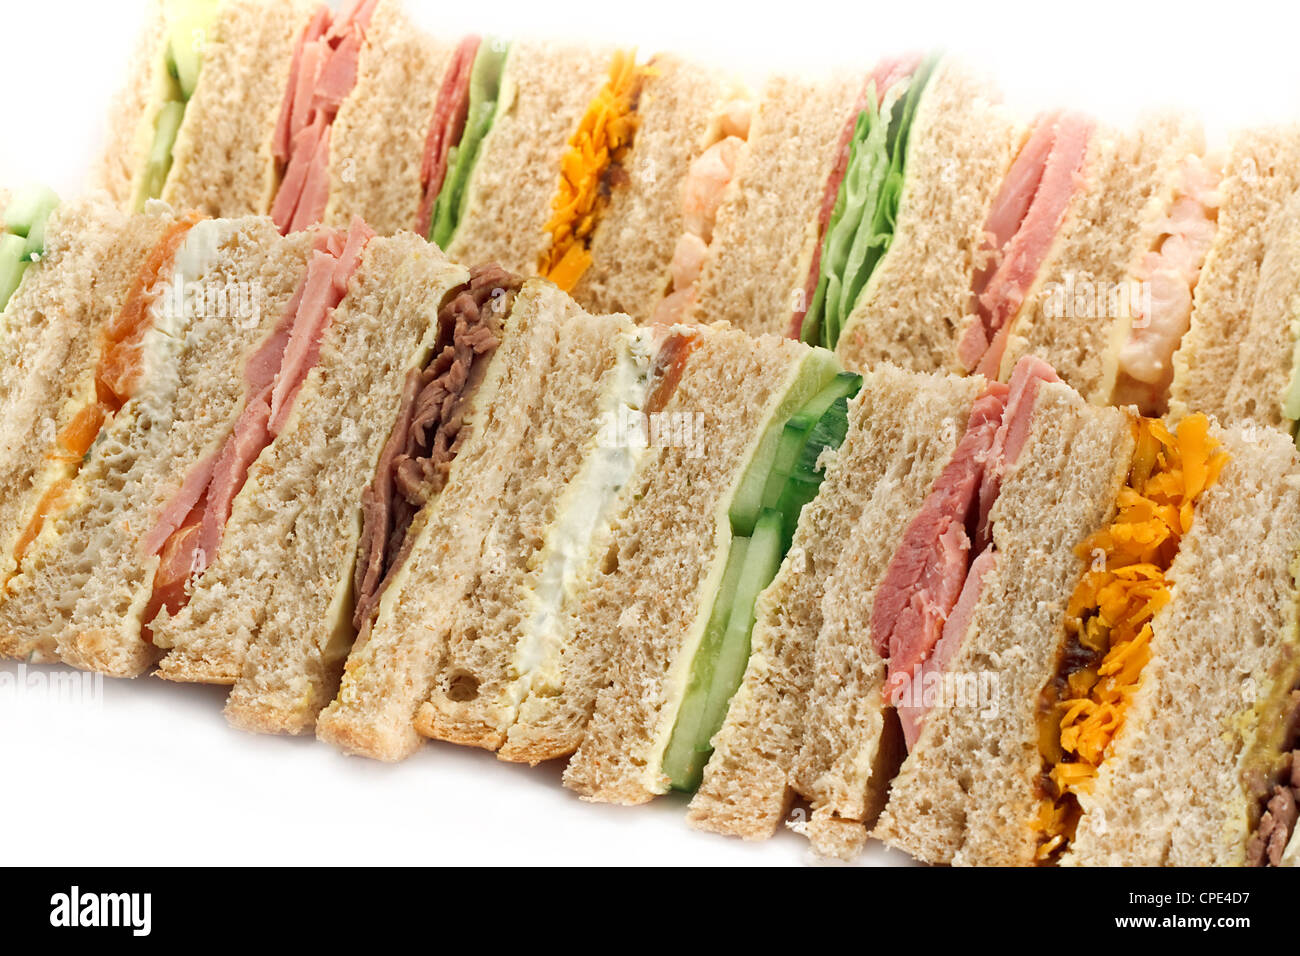 Rows of sandwiches made with sliced bread and cut into triangles - Stock Image